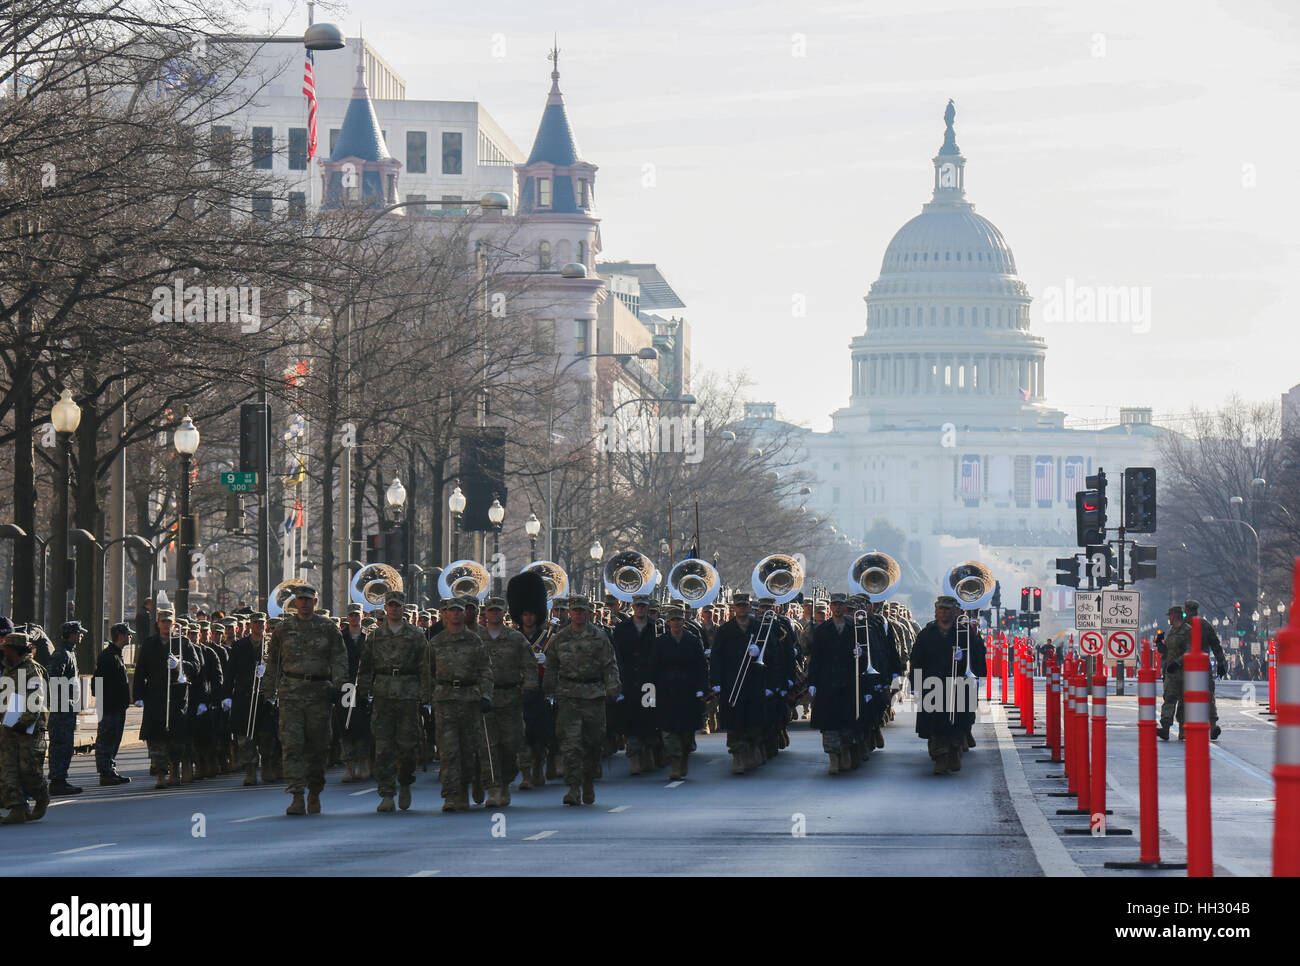 Washington, D.C, USA. 15th January, 2017. Members of the United States Army Staff Element march down Pennsylvania - Stock Image